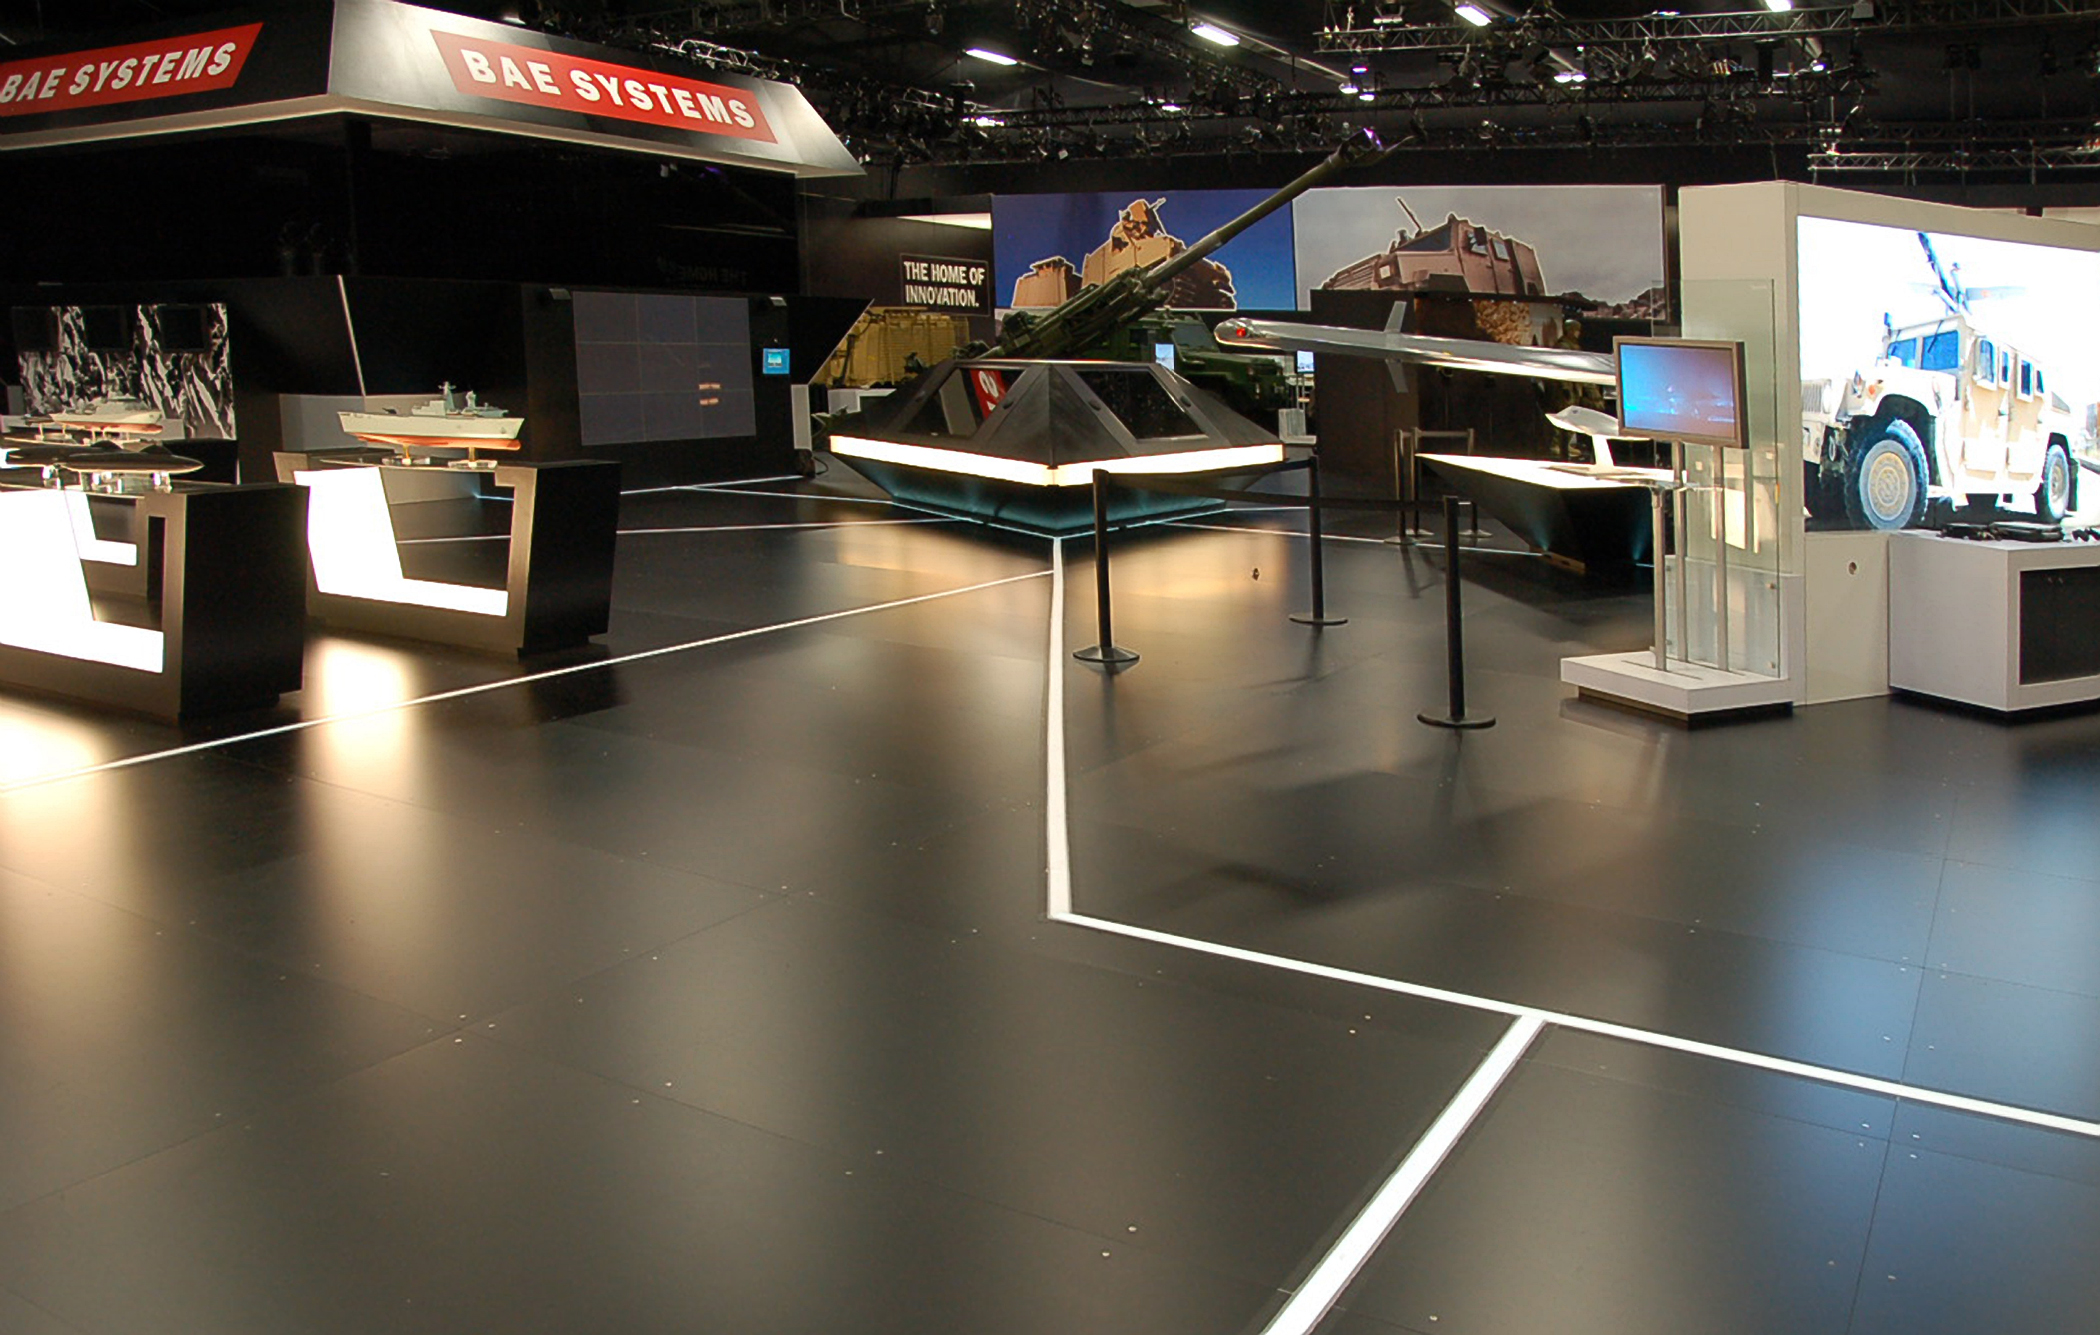 Light tape takes off on bae systems stand at farnborough 2010 once aloadofball Images